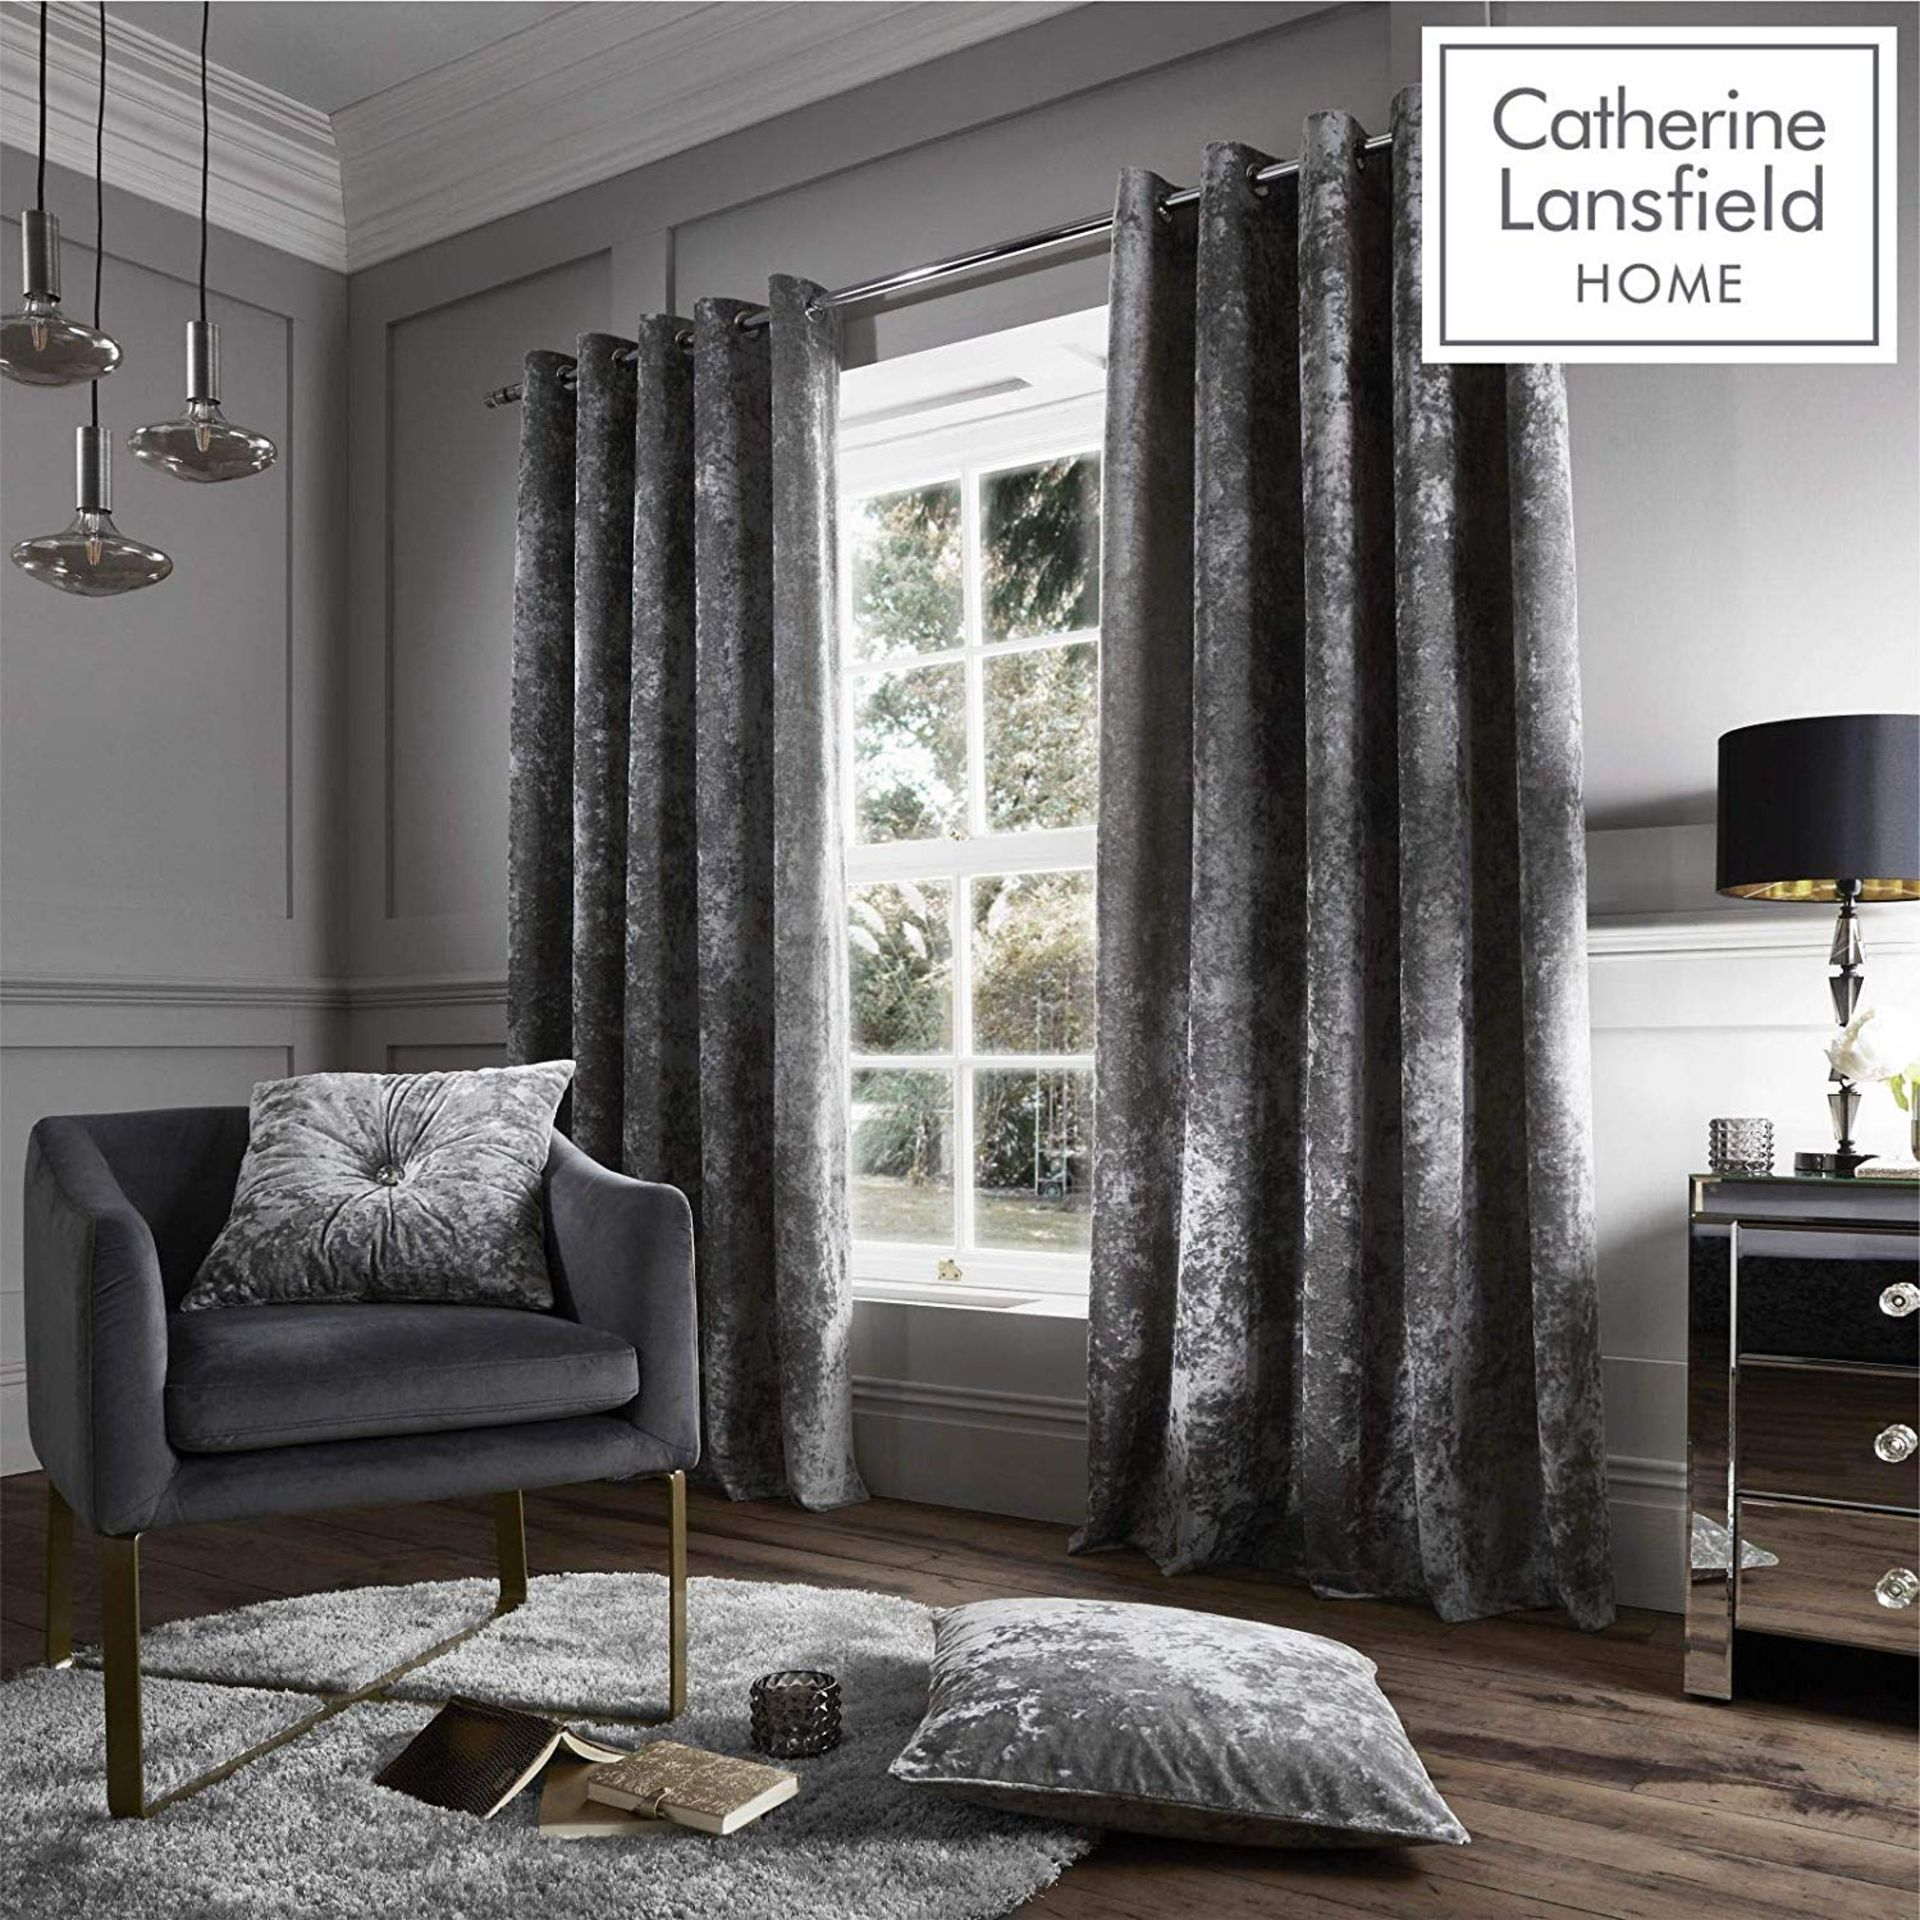 Lot 1 - Catherine Lansfield Crushed Velvet Eyelet Curtains Silver, 66x90 Inch RRP £69.99